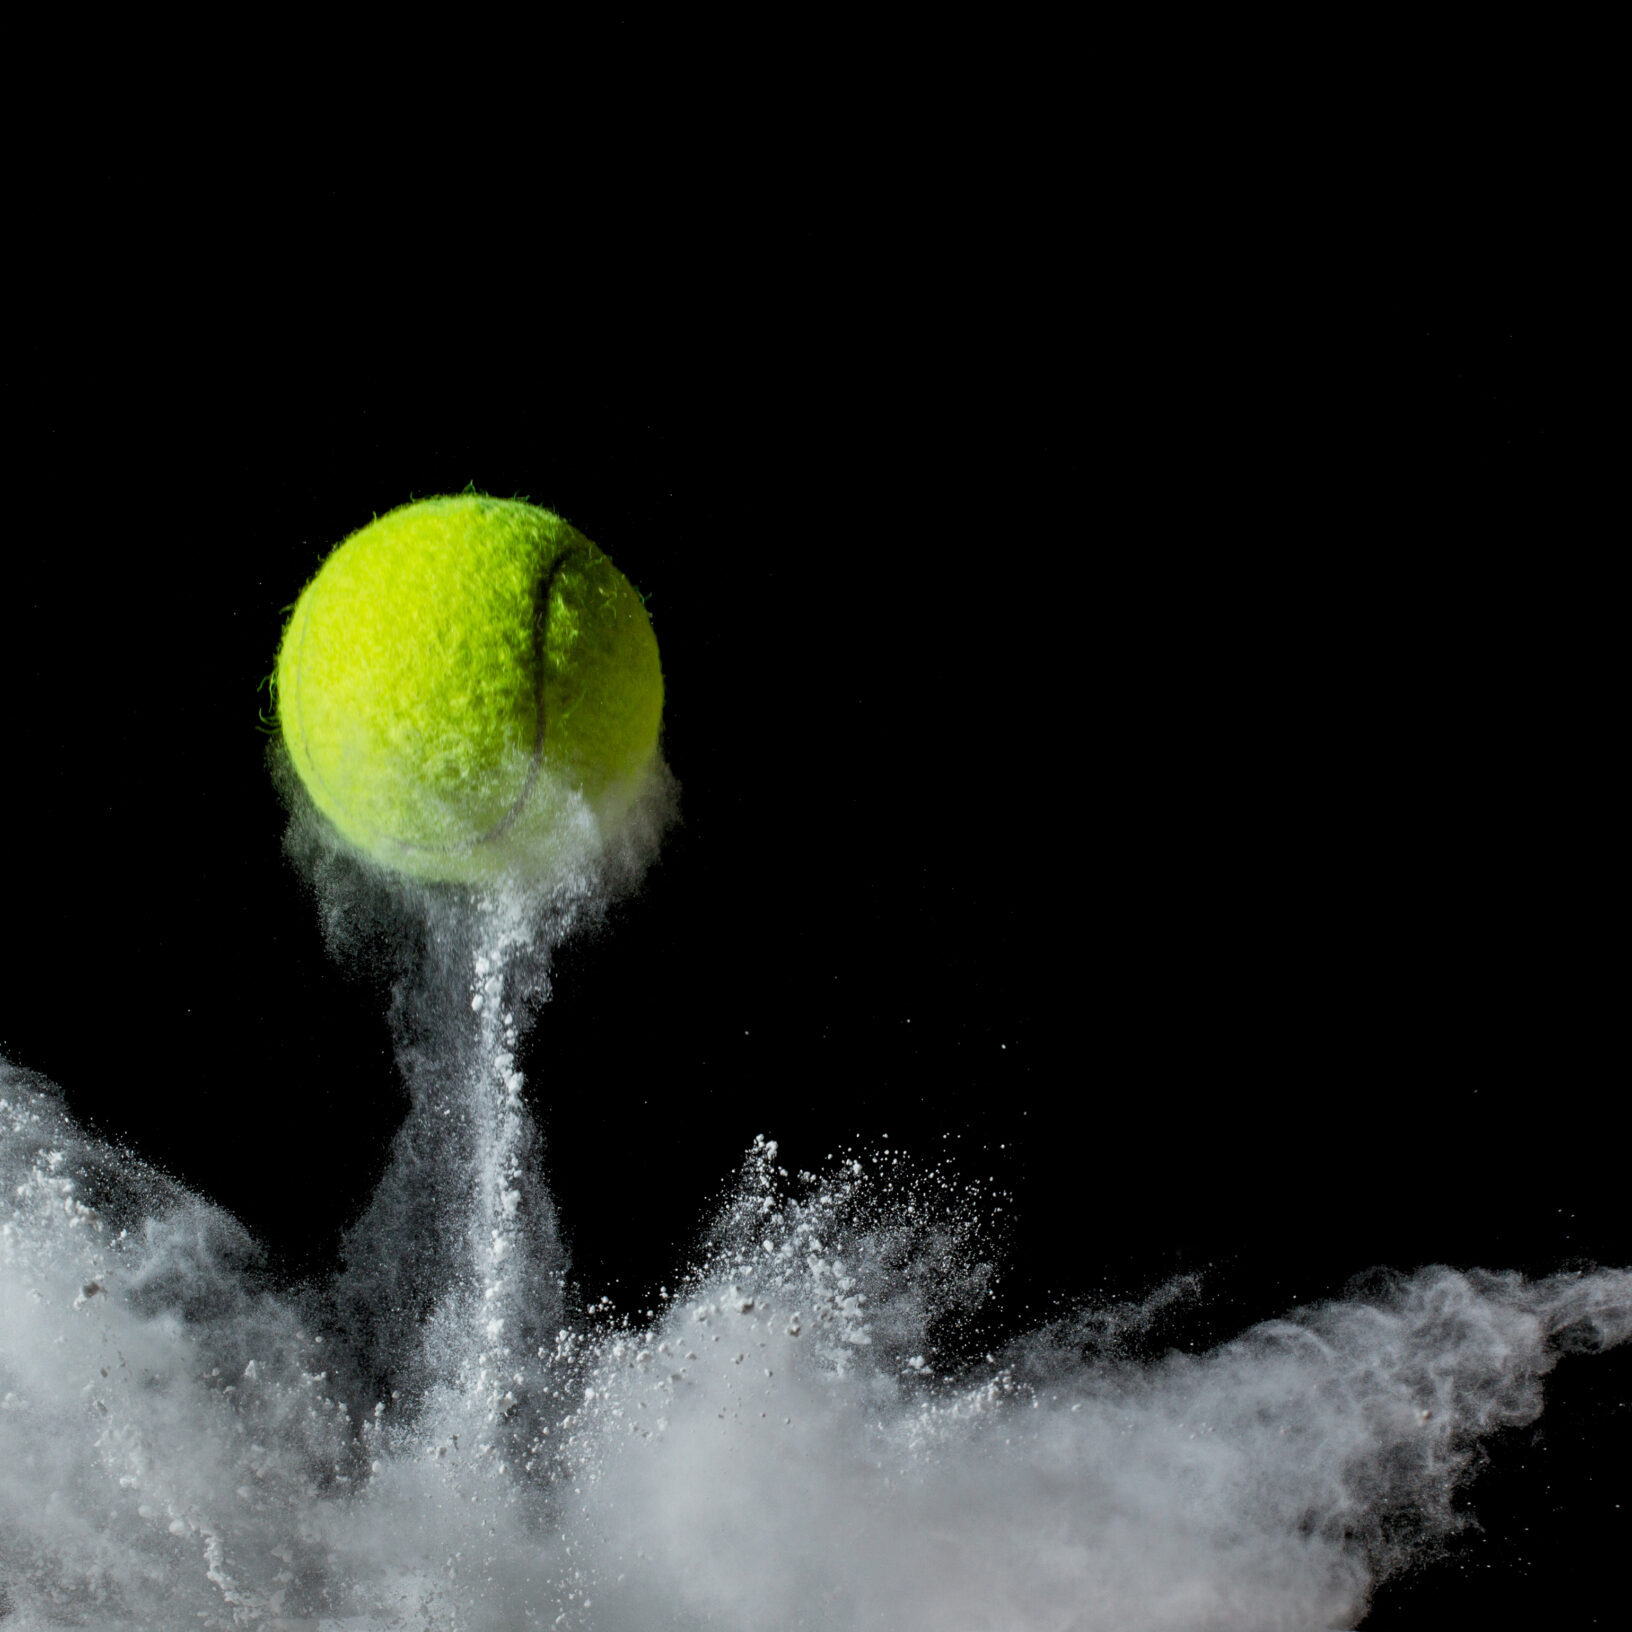 Our Elastic Business Consulting Service represented by a Bouncing Tennis Ball